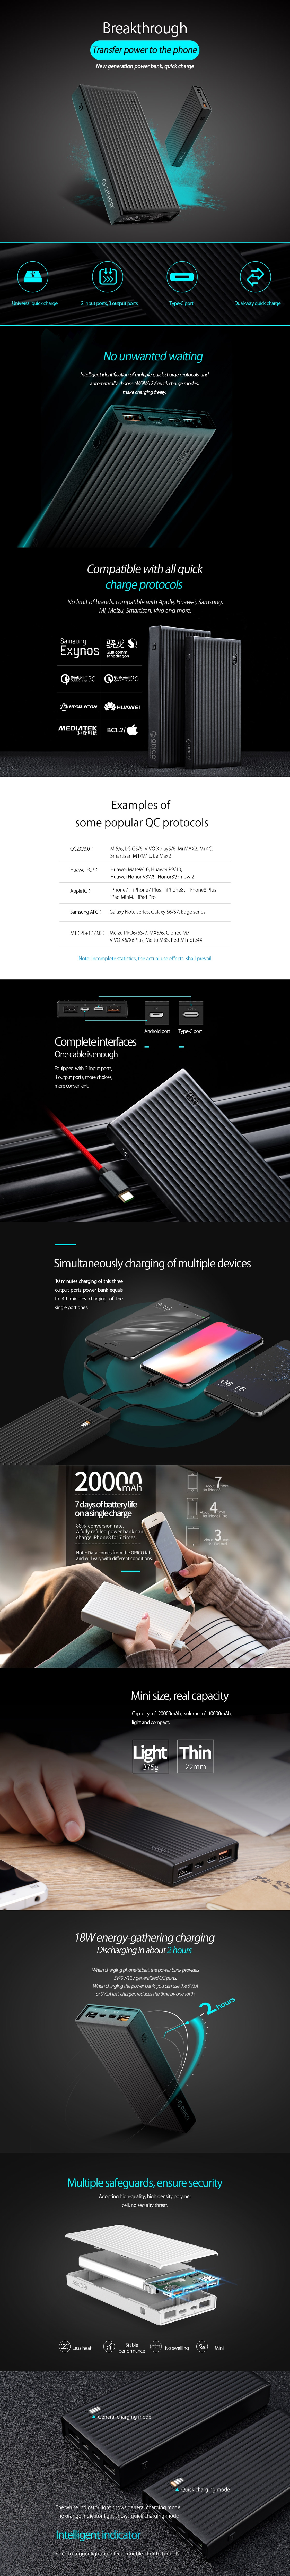 A large marketing image providing additional information about the product ORICO 20000mAh USB-A Type-C & Micro B Smart Power Bank - Black - Additional alt info not provided